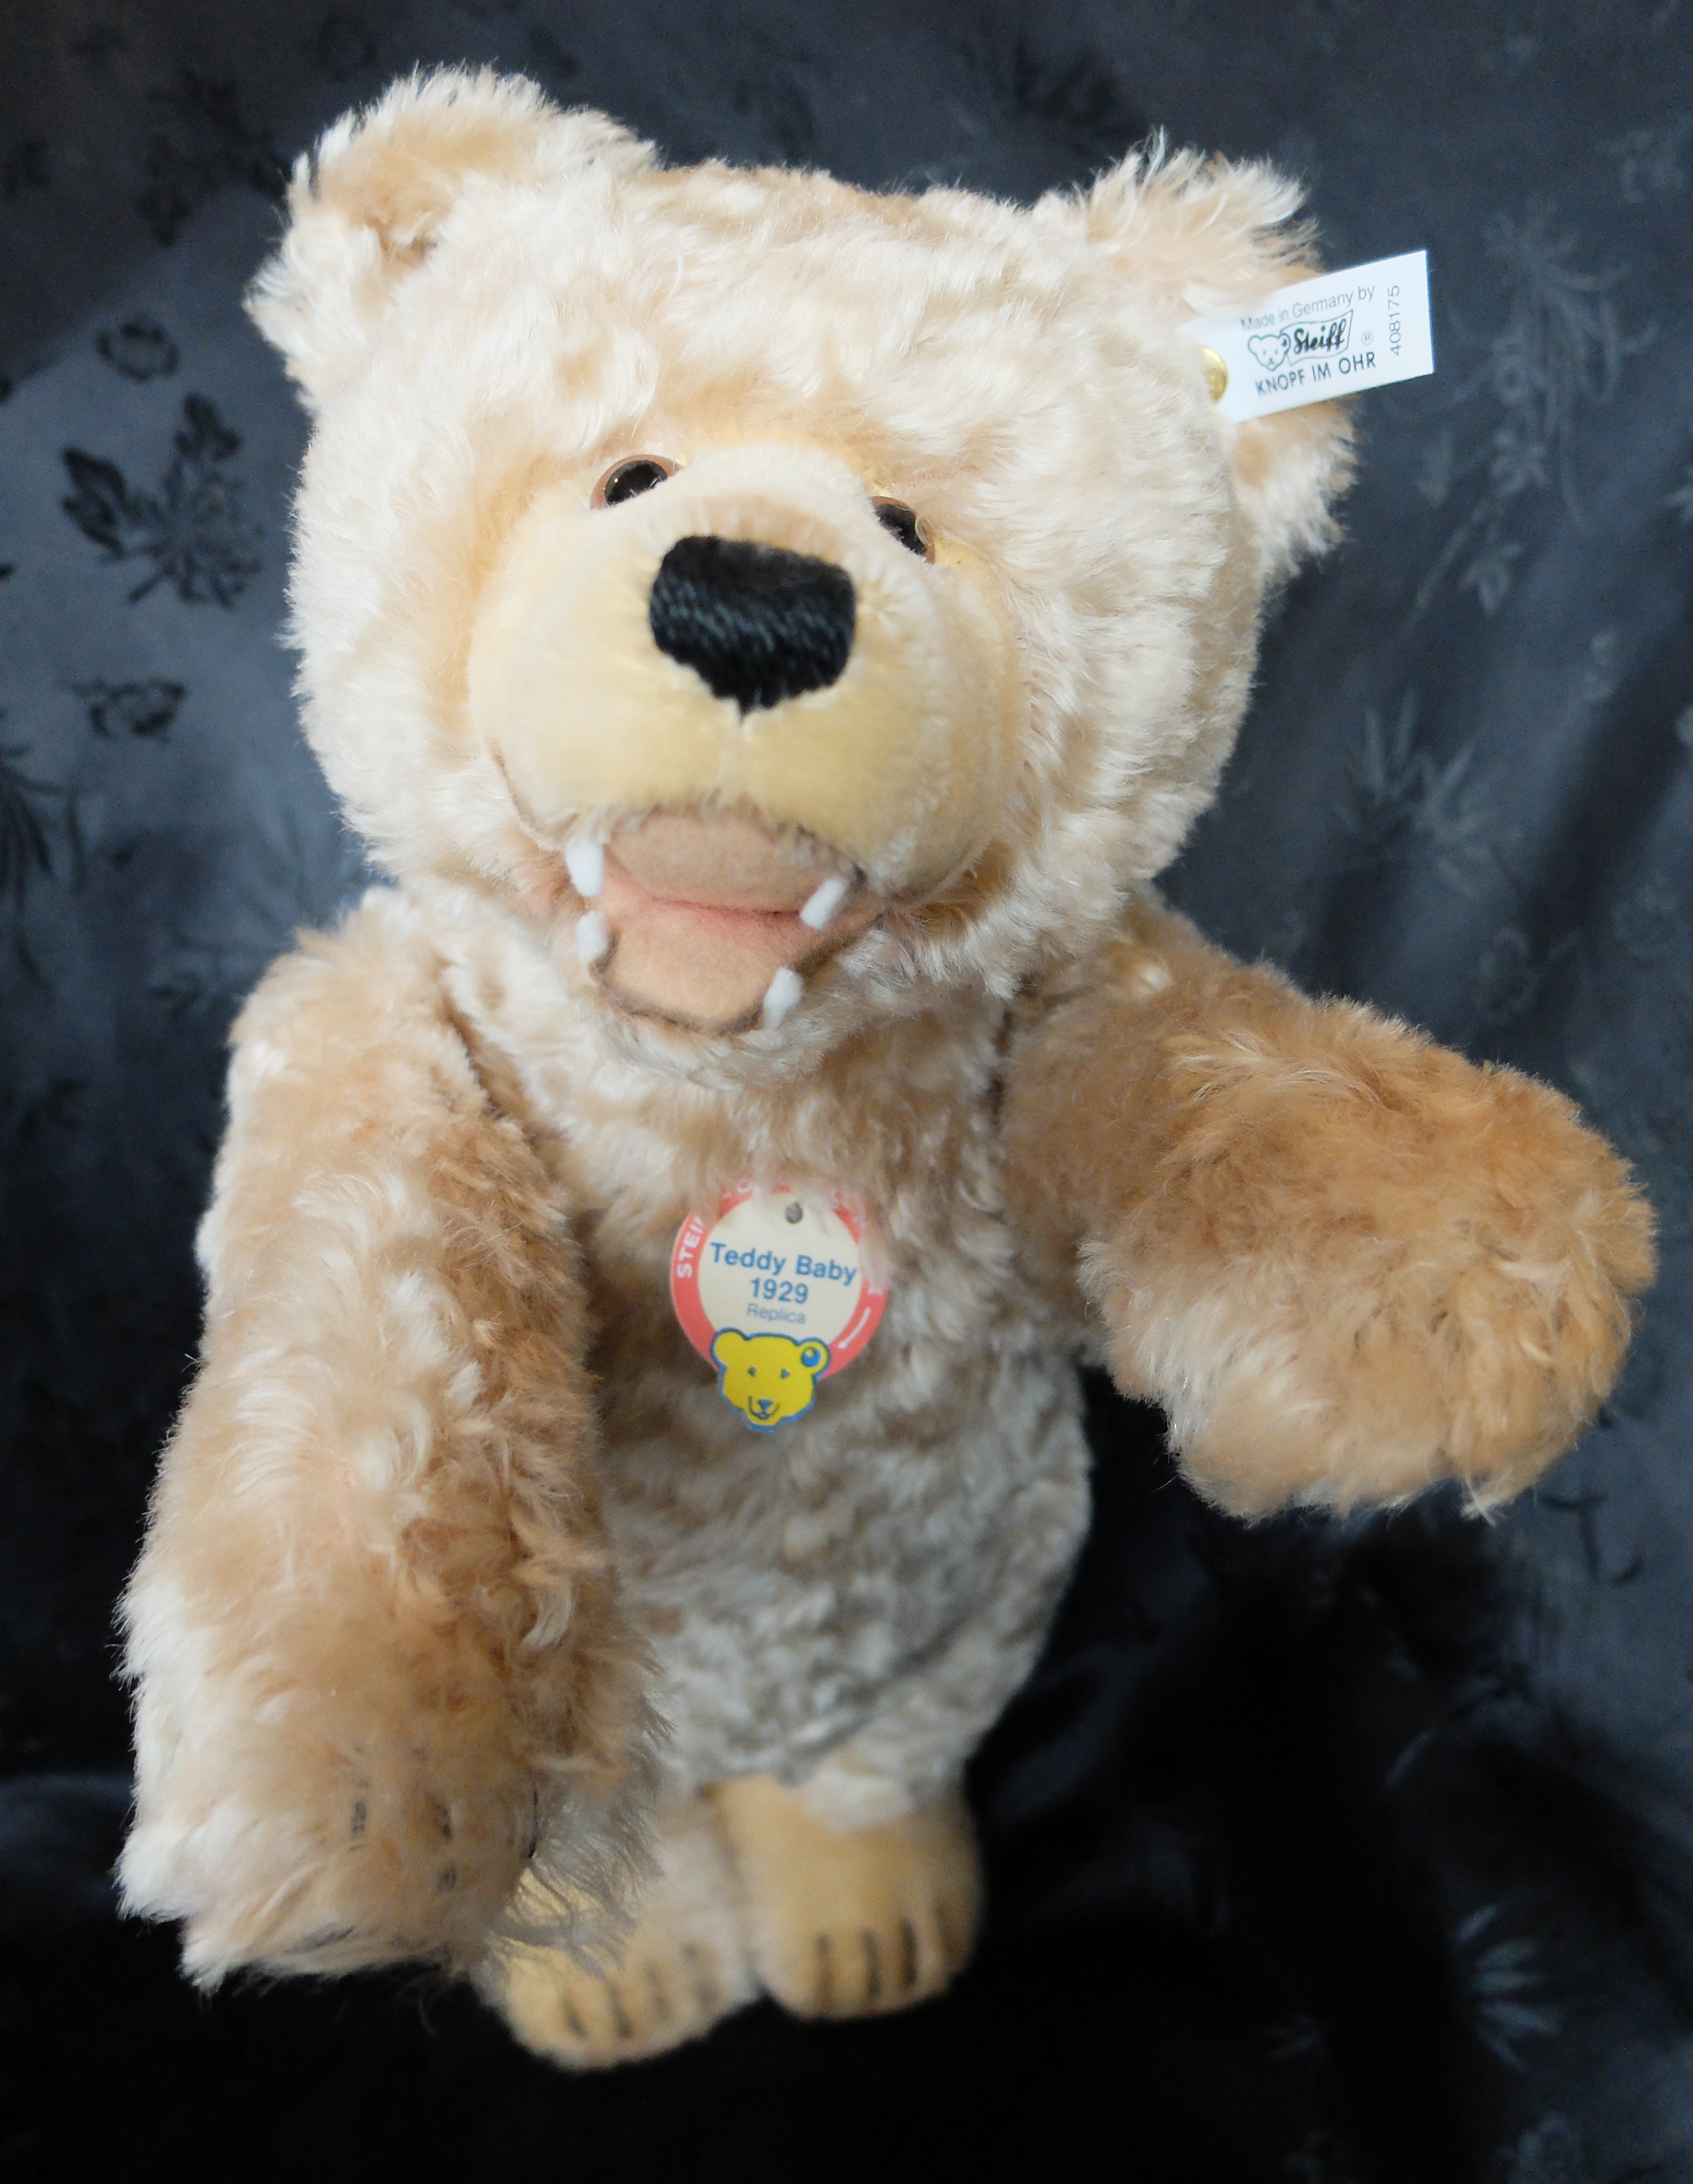 teddy bears friends steiff teddy baby with teeth 1929 replica year 1995 limited. Black Bedroom Furniture Sets. Home Design Ideas